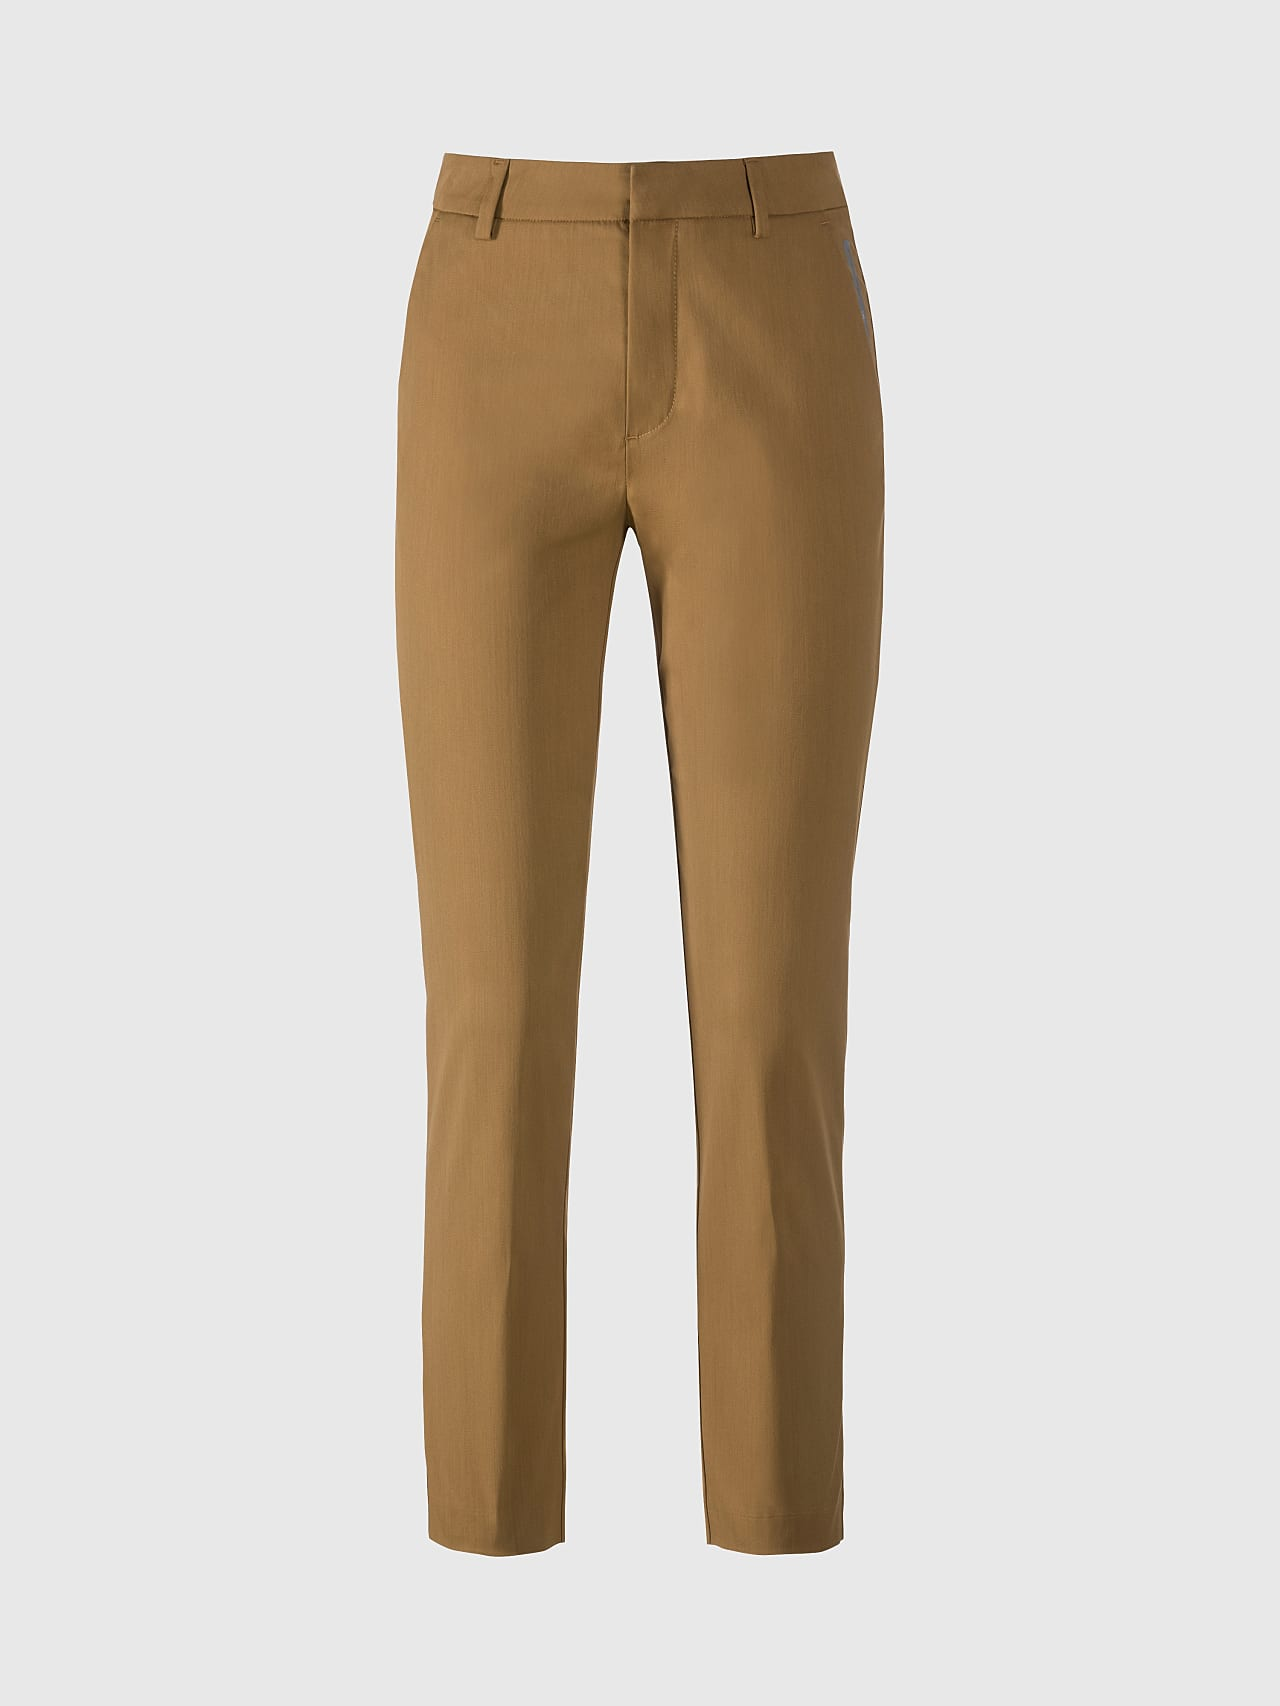 PEPPI V1.Y5.01 Water-Repellent Cotton-Twill Chino brown Back Alpha Tauri